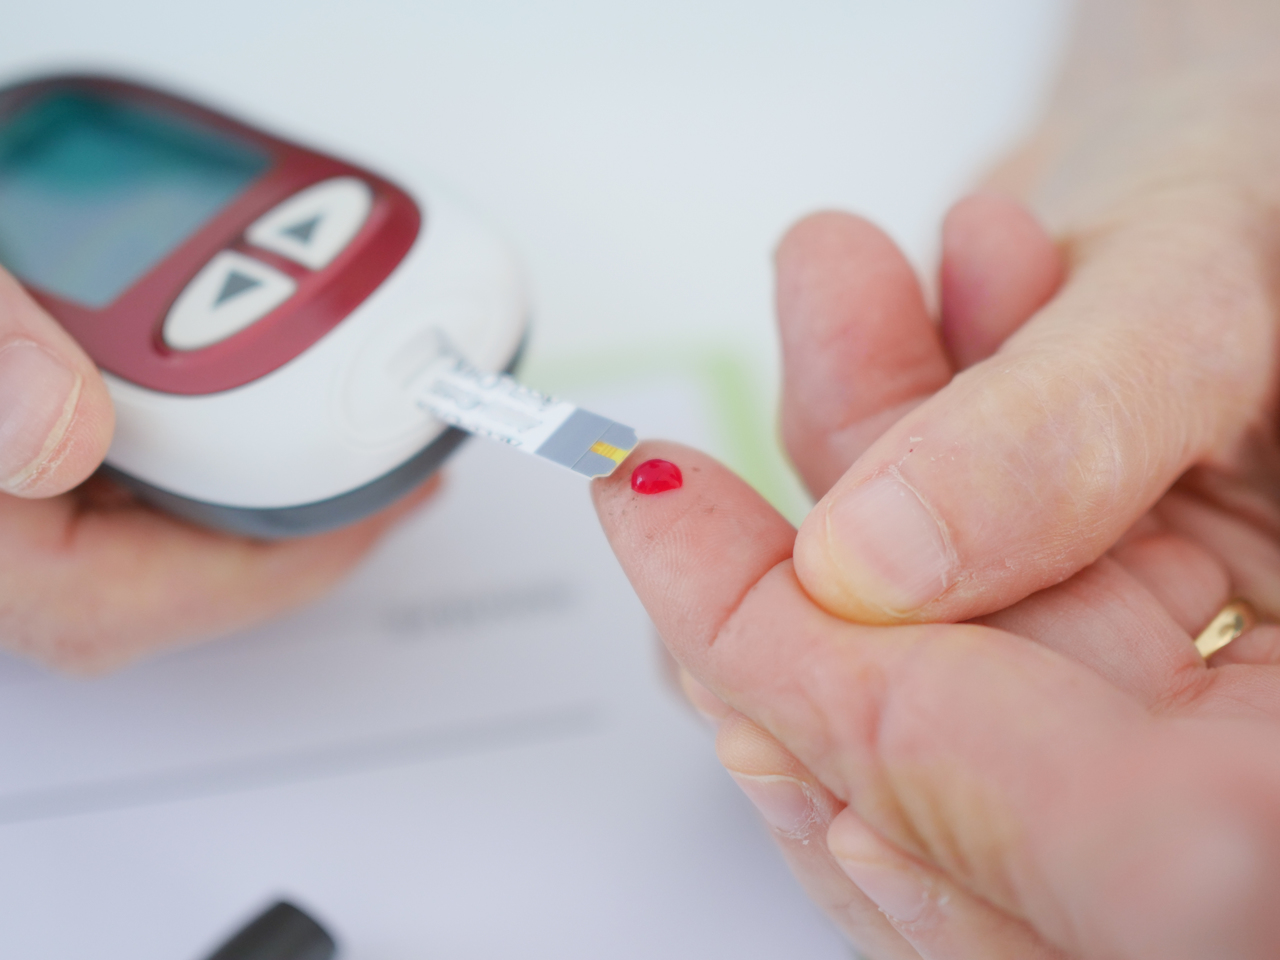 Close up of a person taking a blood sugar test